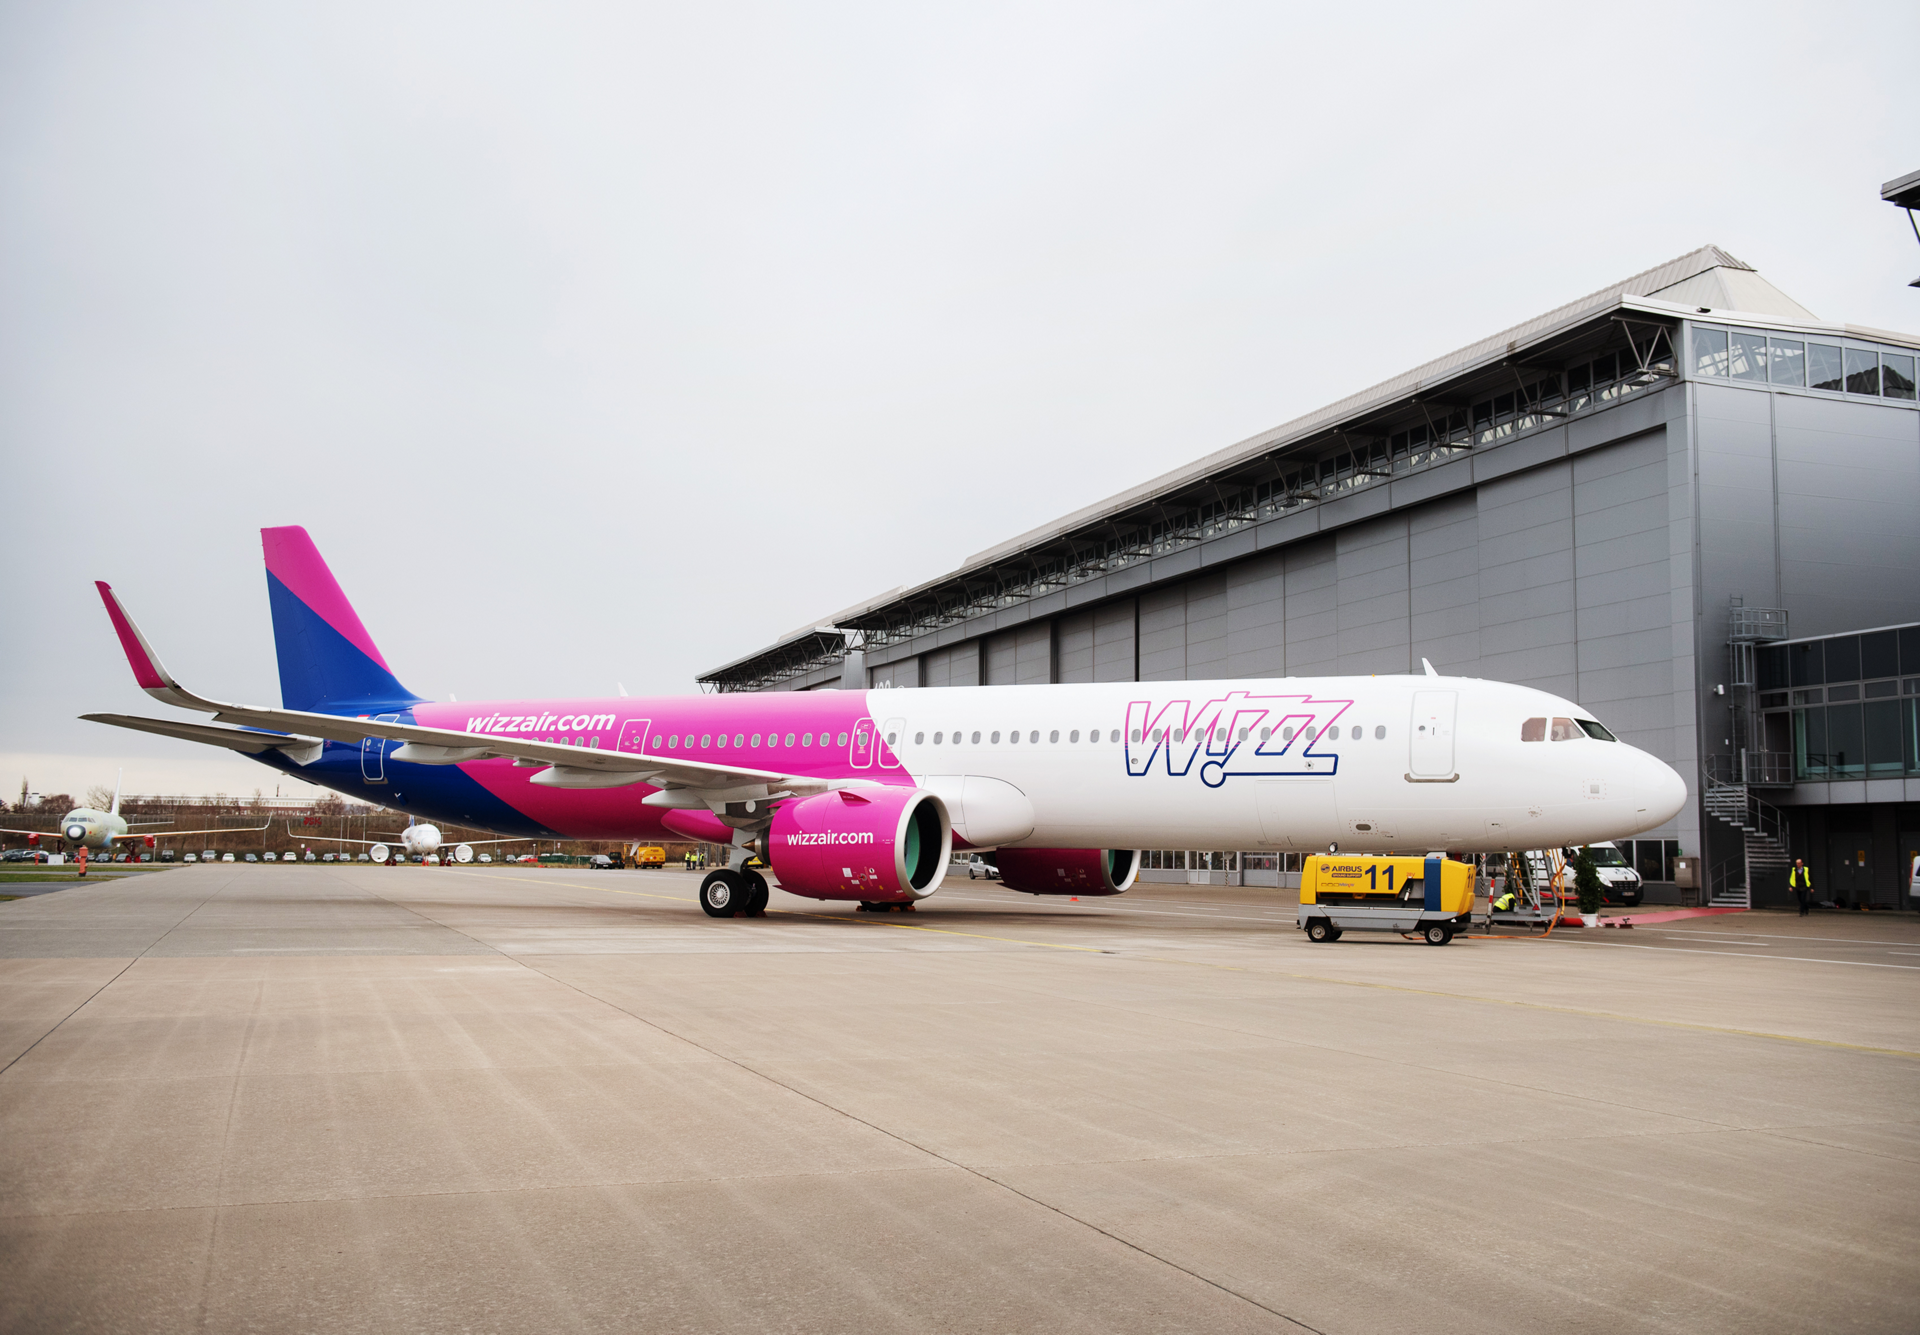 An all-Airbus carrier with more than 100 A320 Family jetliners in operation, Wizz Air has begun taking deliveries of 184 A321neo aircraft it has on order